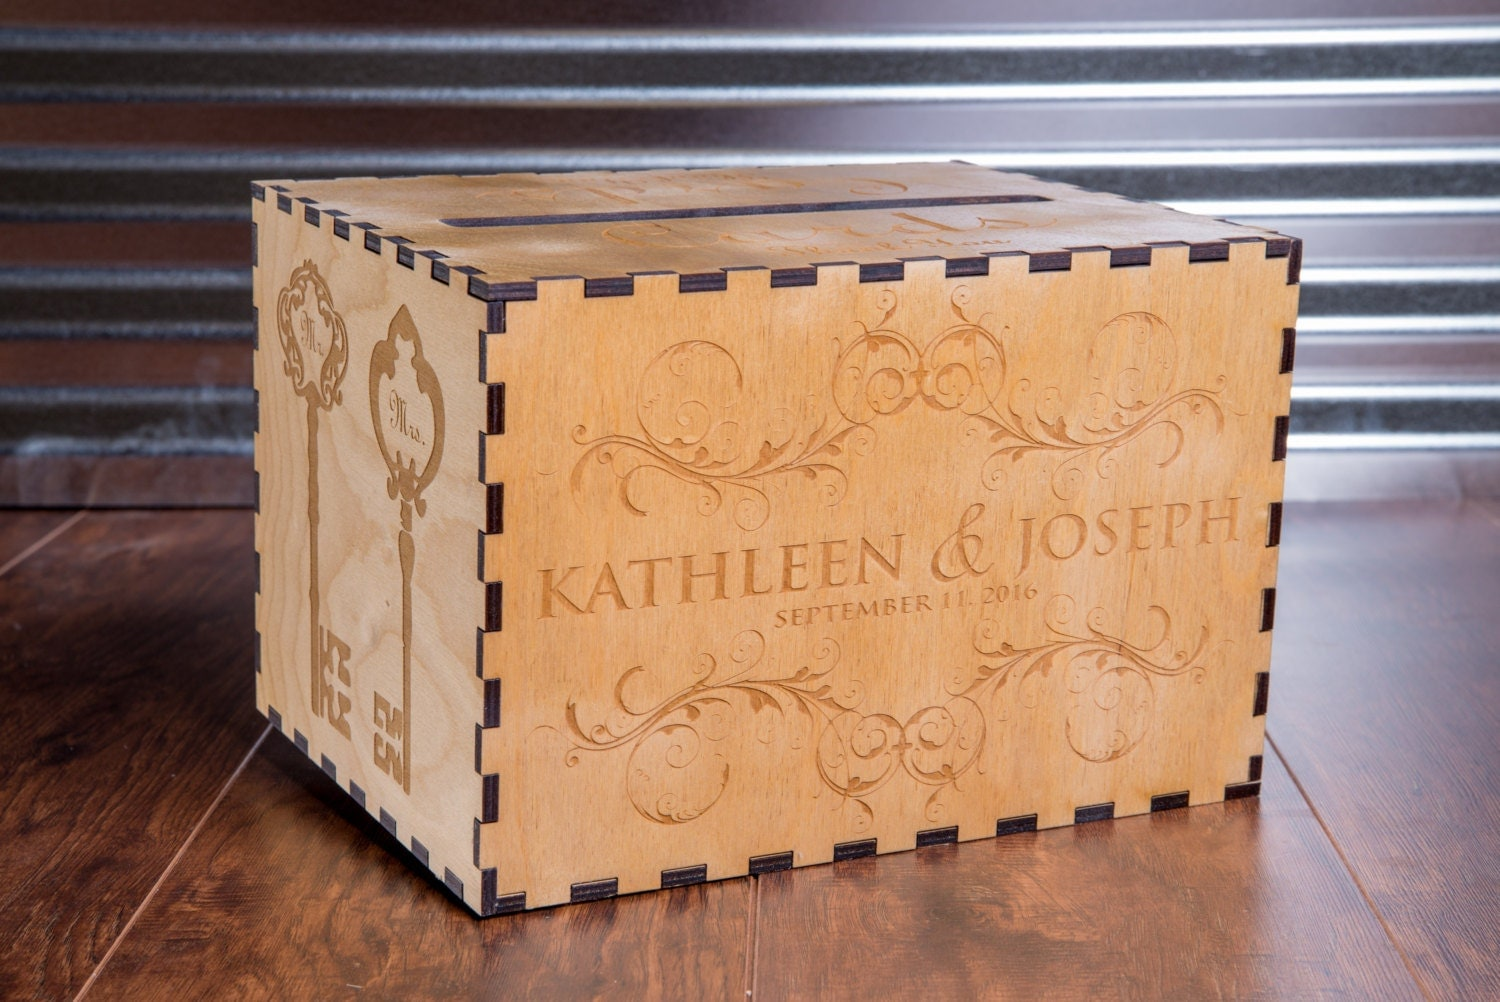 Rustic Personalized Card Box For Wedding Vineyard Winery Theme Gift Chest Birdcage MailBox Memory Engraved